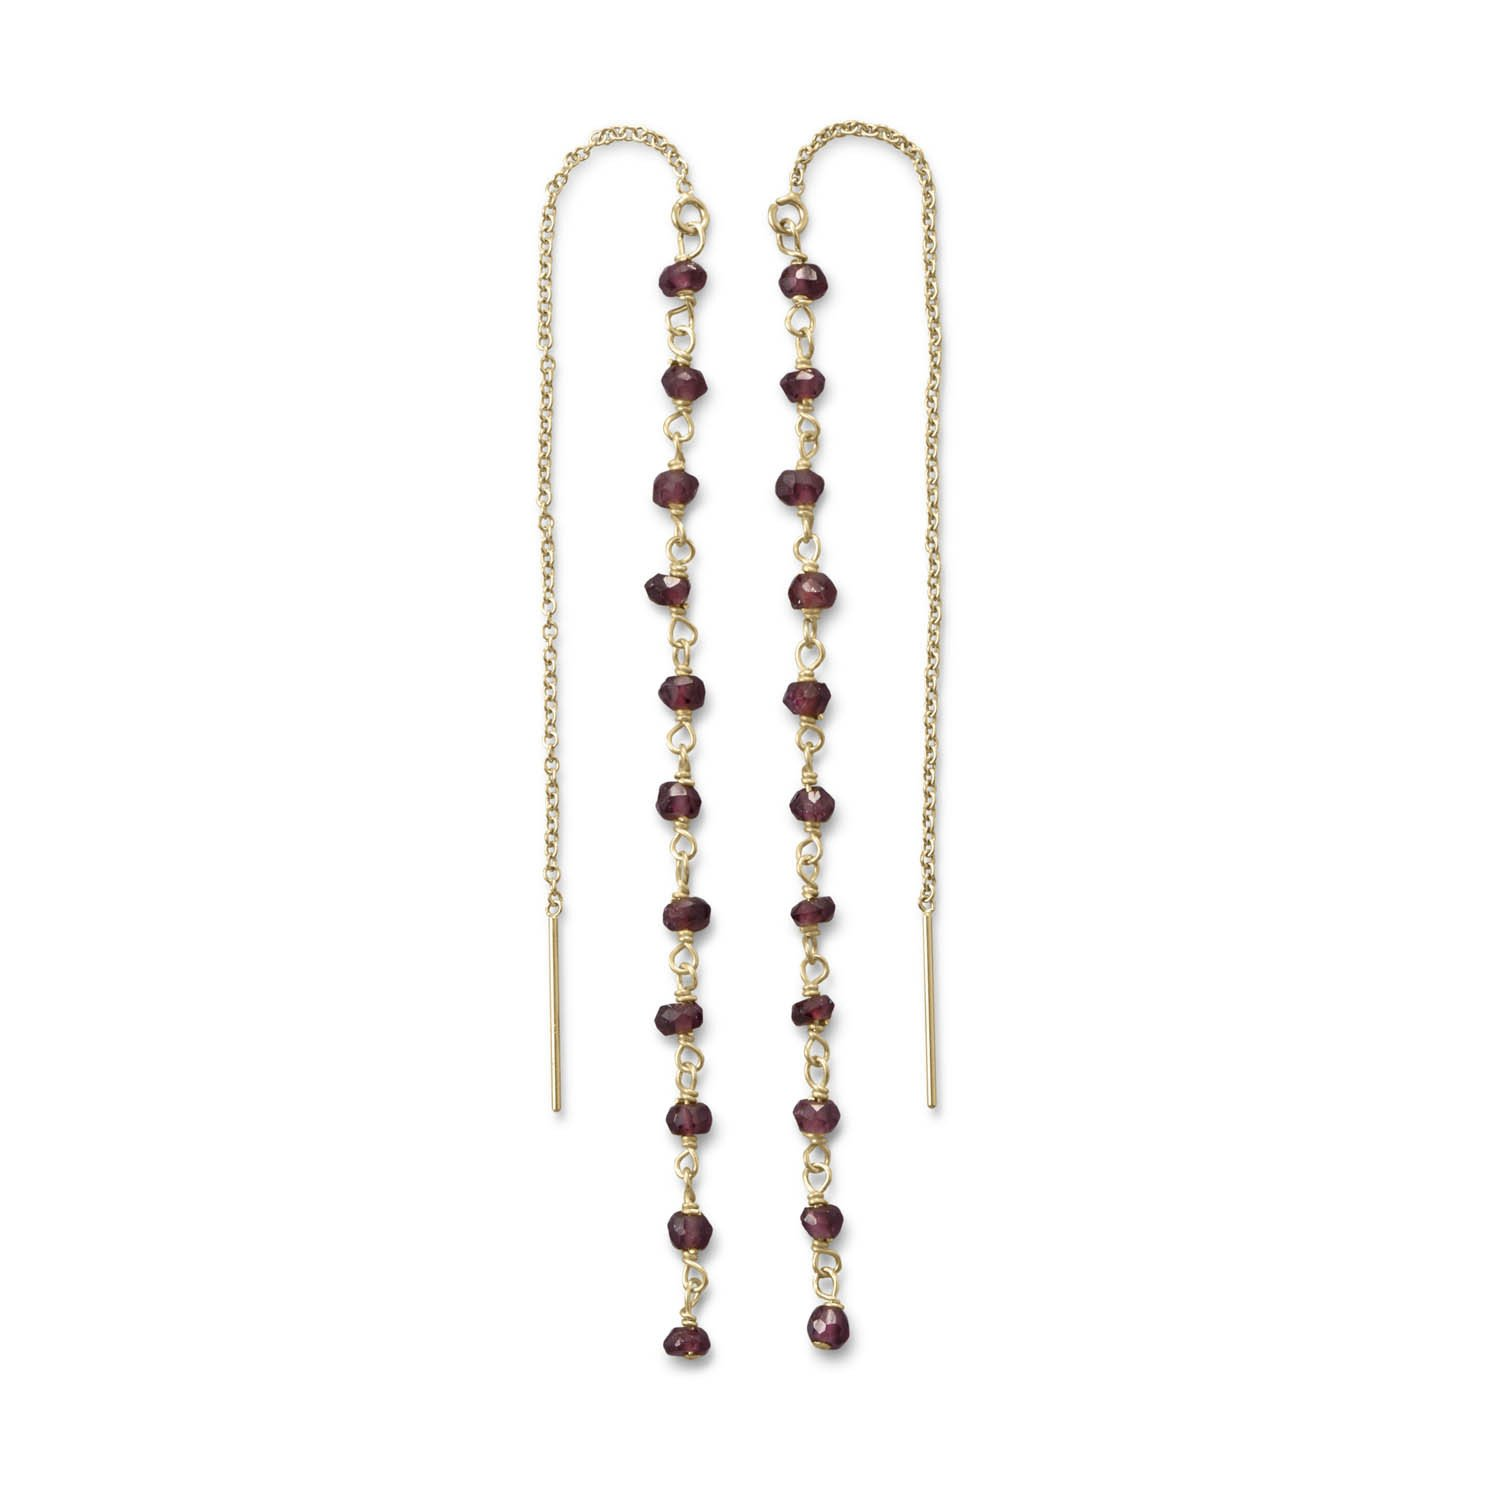 Garnet Bead Threader Earrings